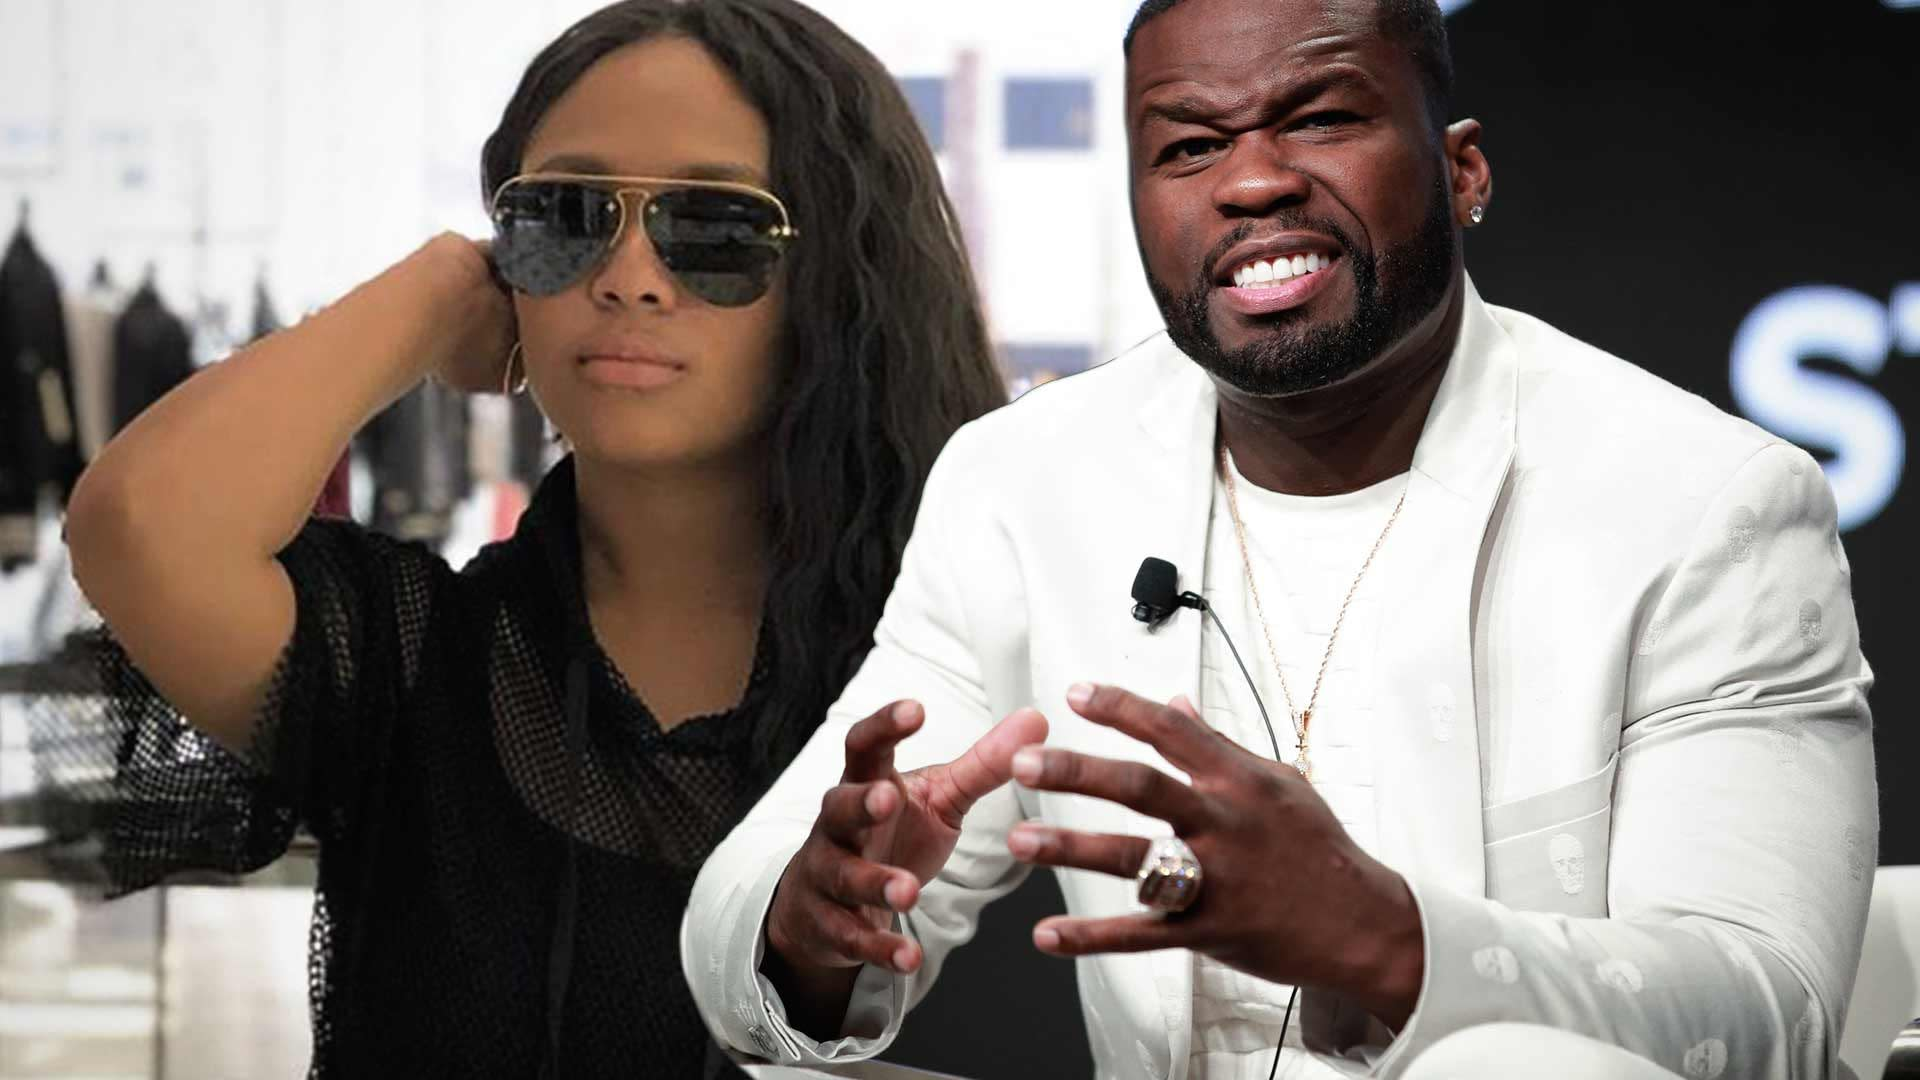 50 Cent Video Porno 50 cent wins another $4,000 from 'love & hip hop' star